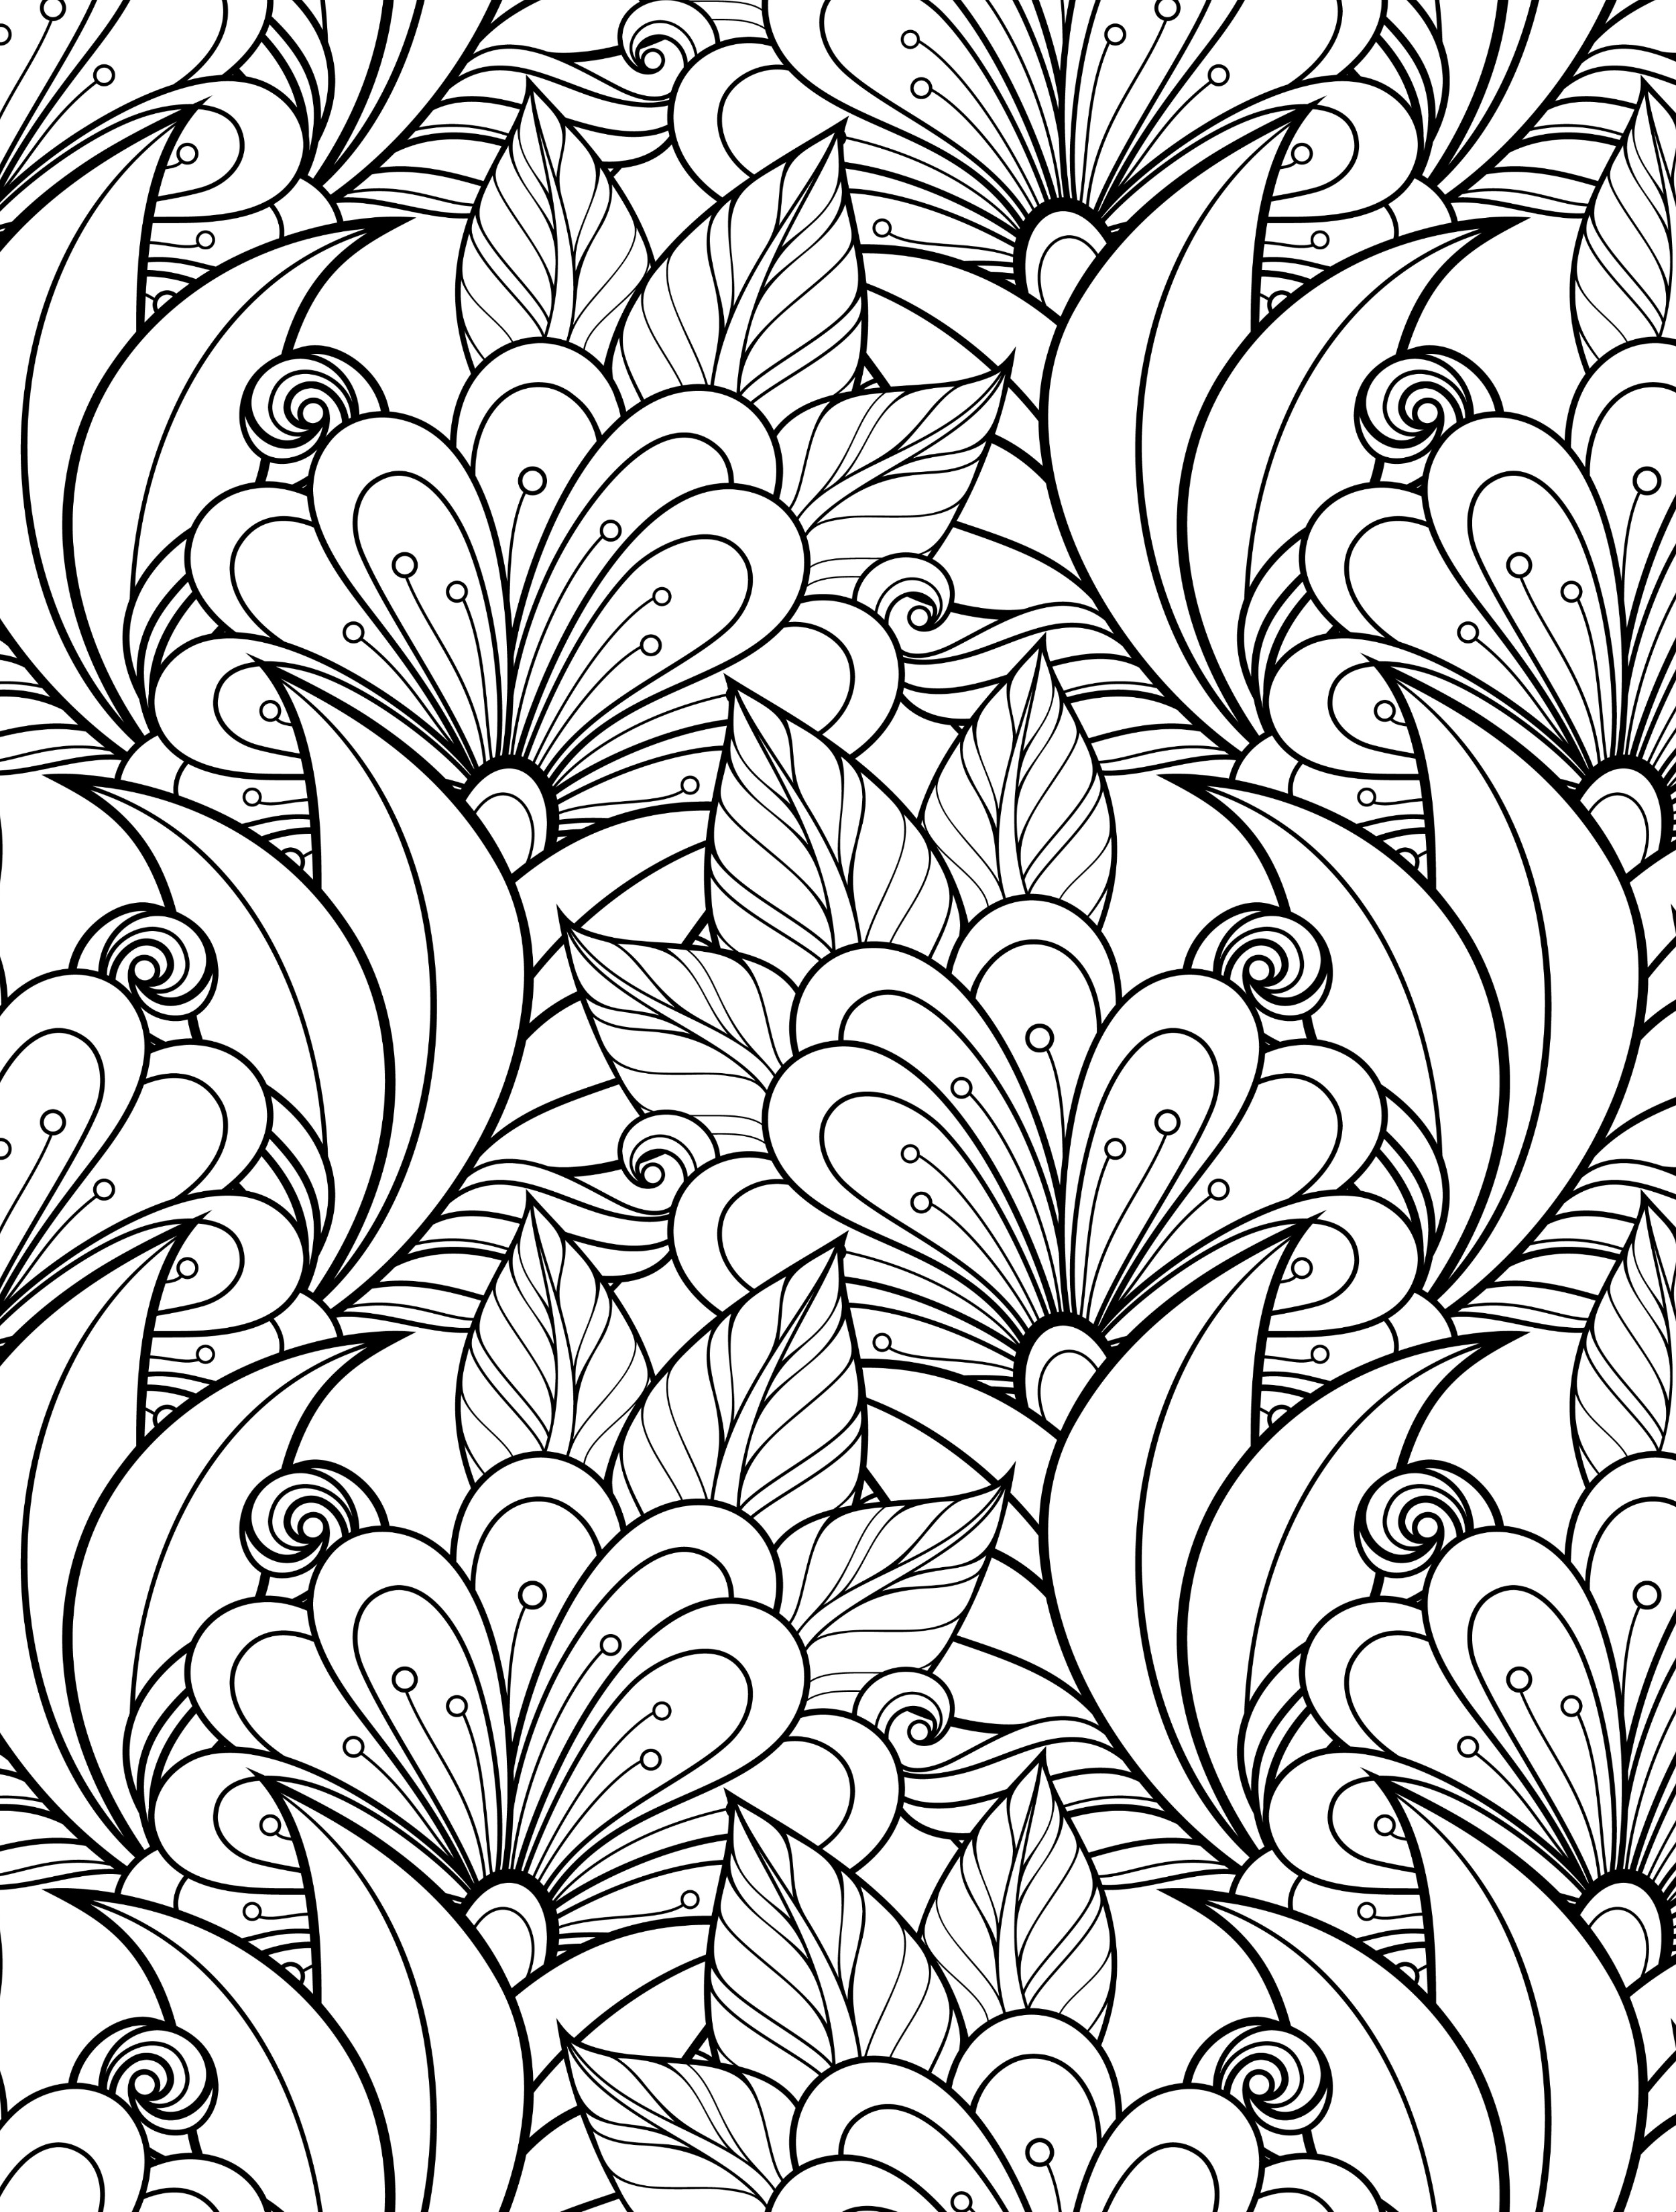 designs to color free floral coloring pages for adults best coloring pages for designs free to color